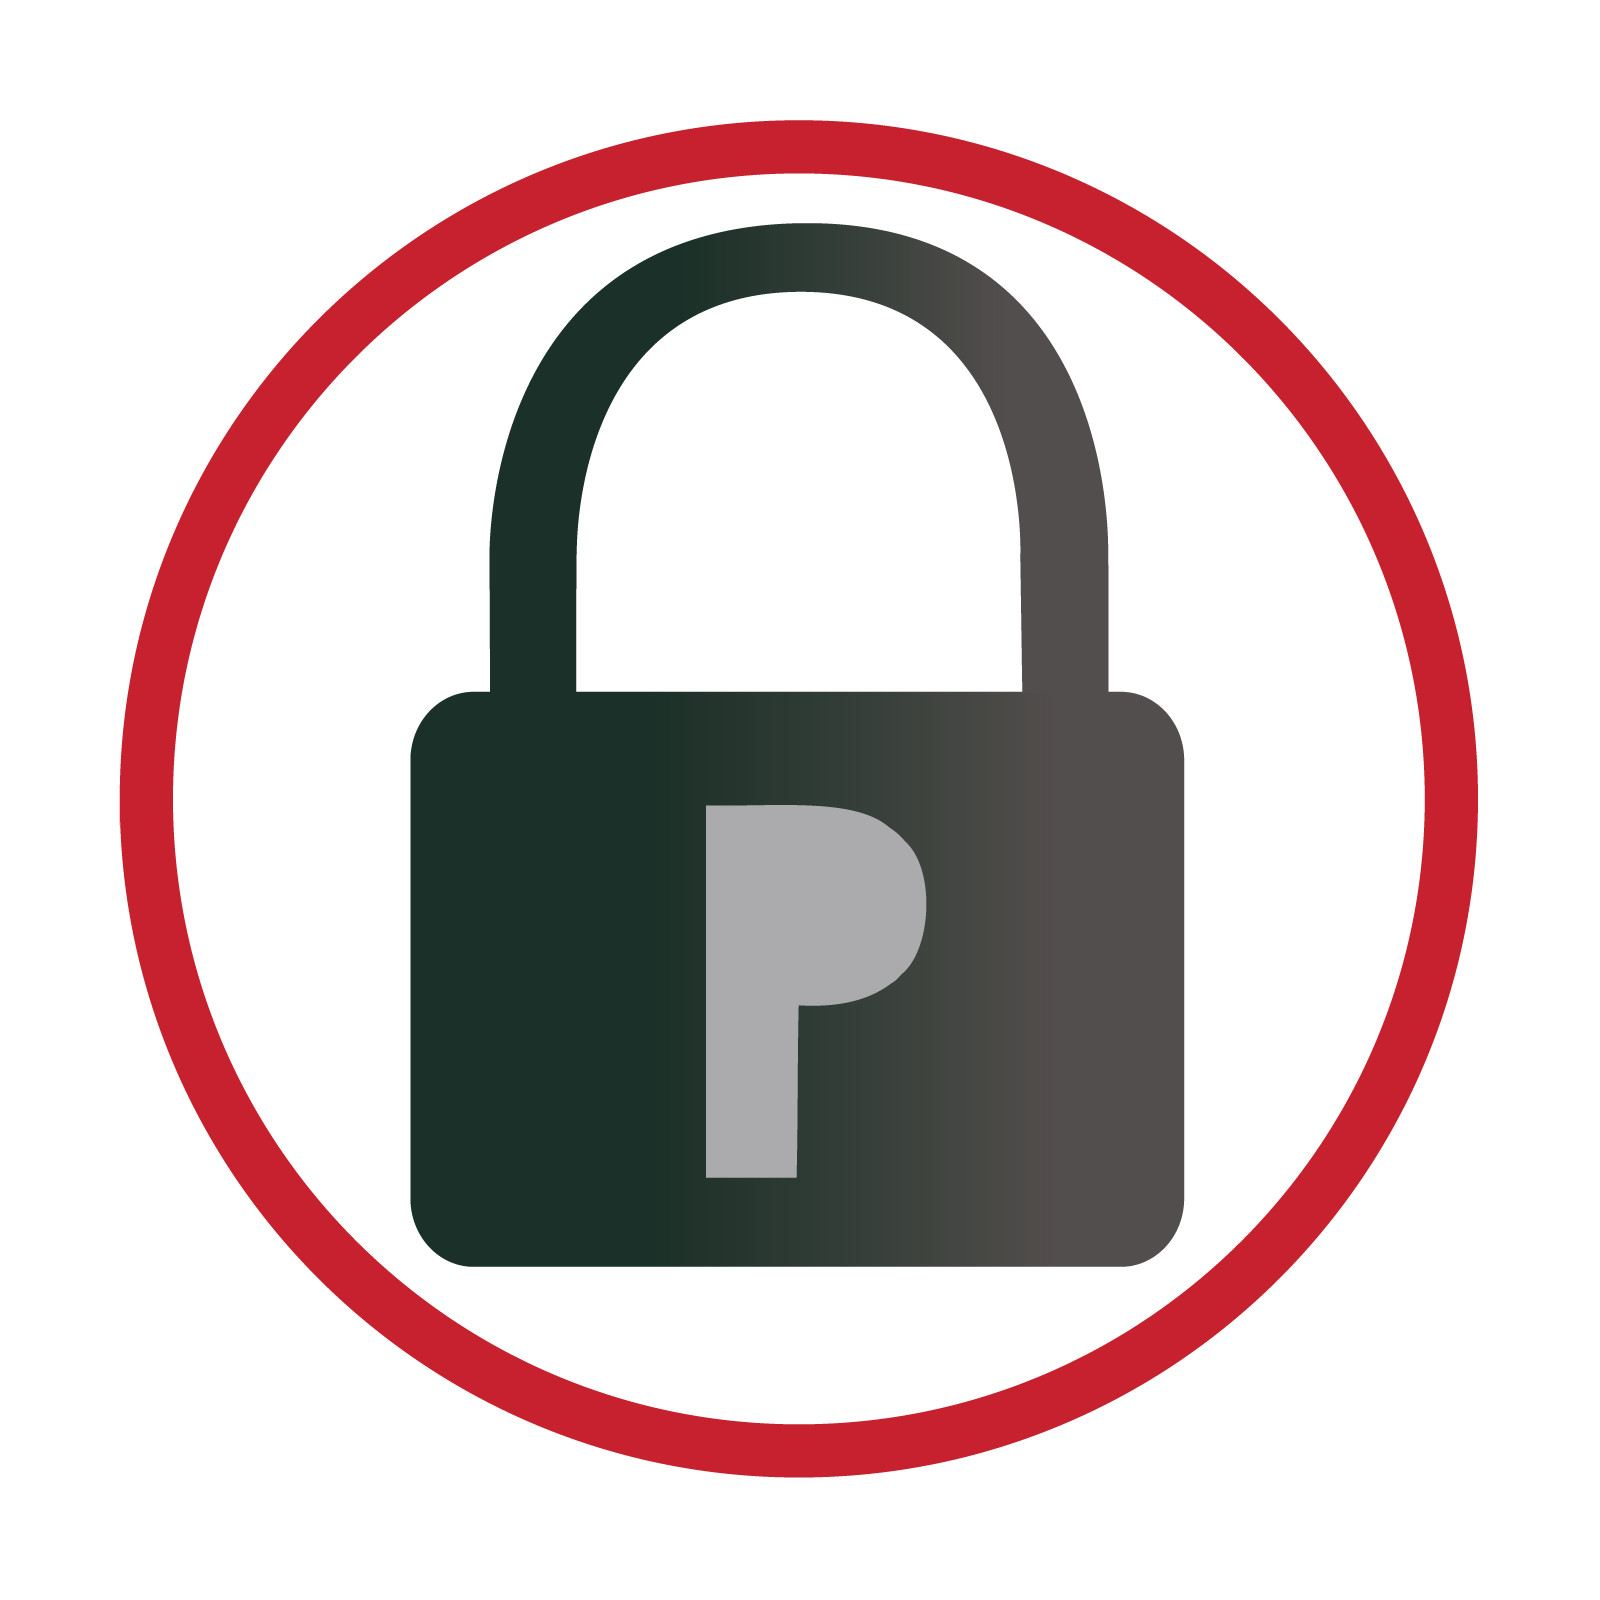 Password RBL Logo